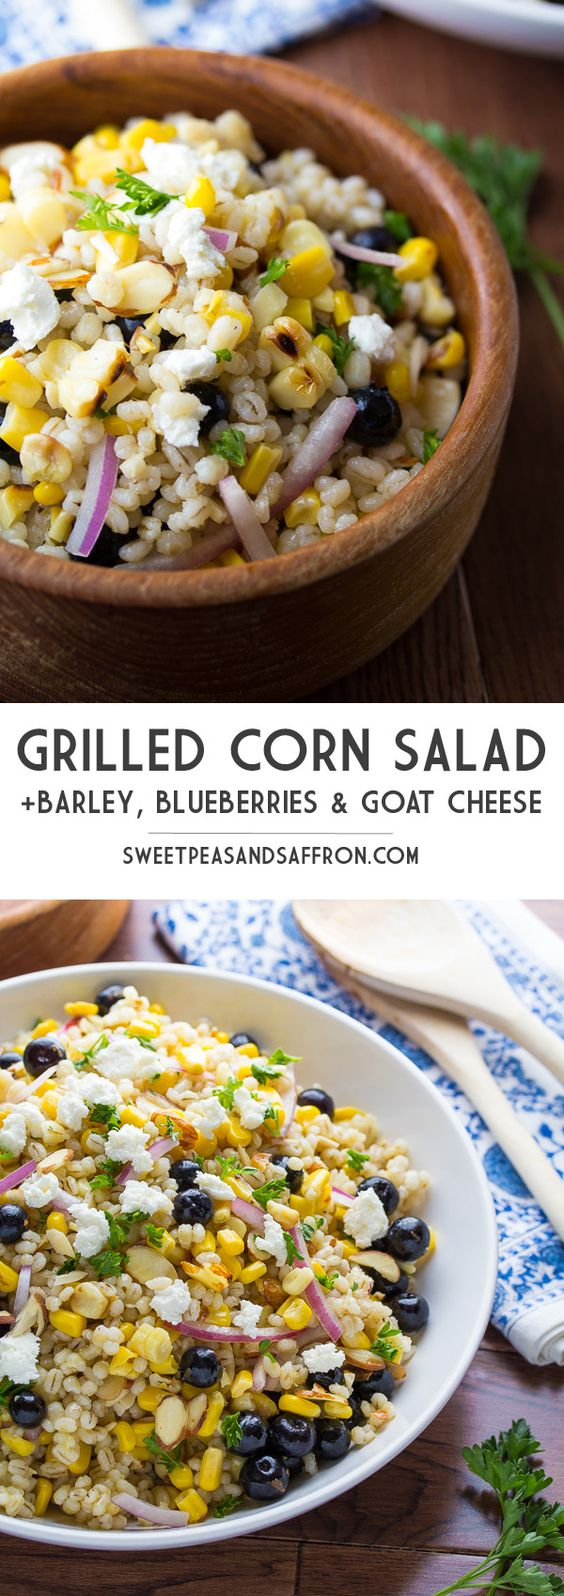 ... cheese goats blueberries salads grilled corn salad cheese corn salads